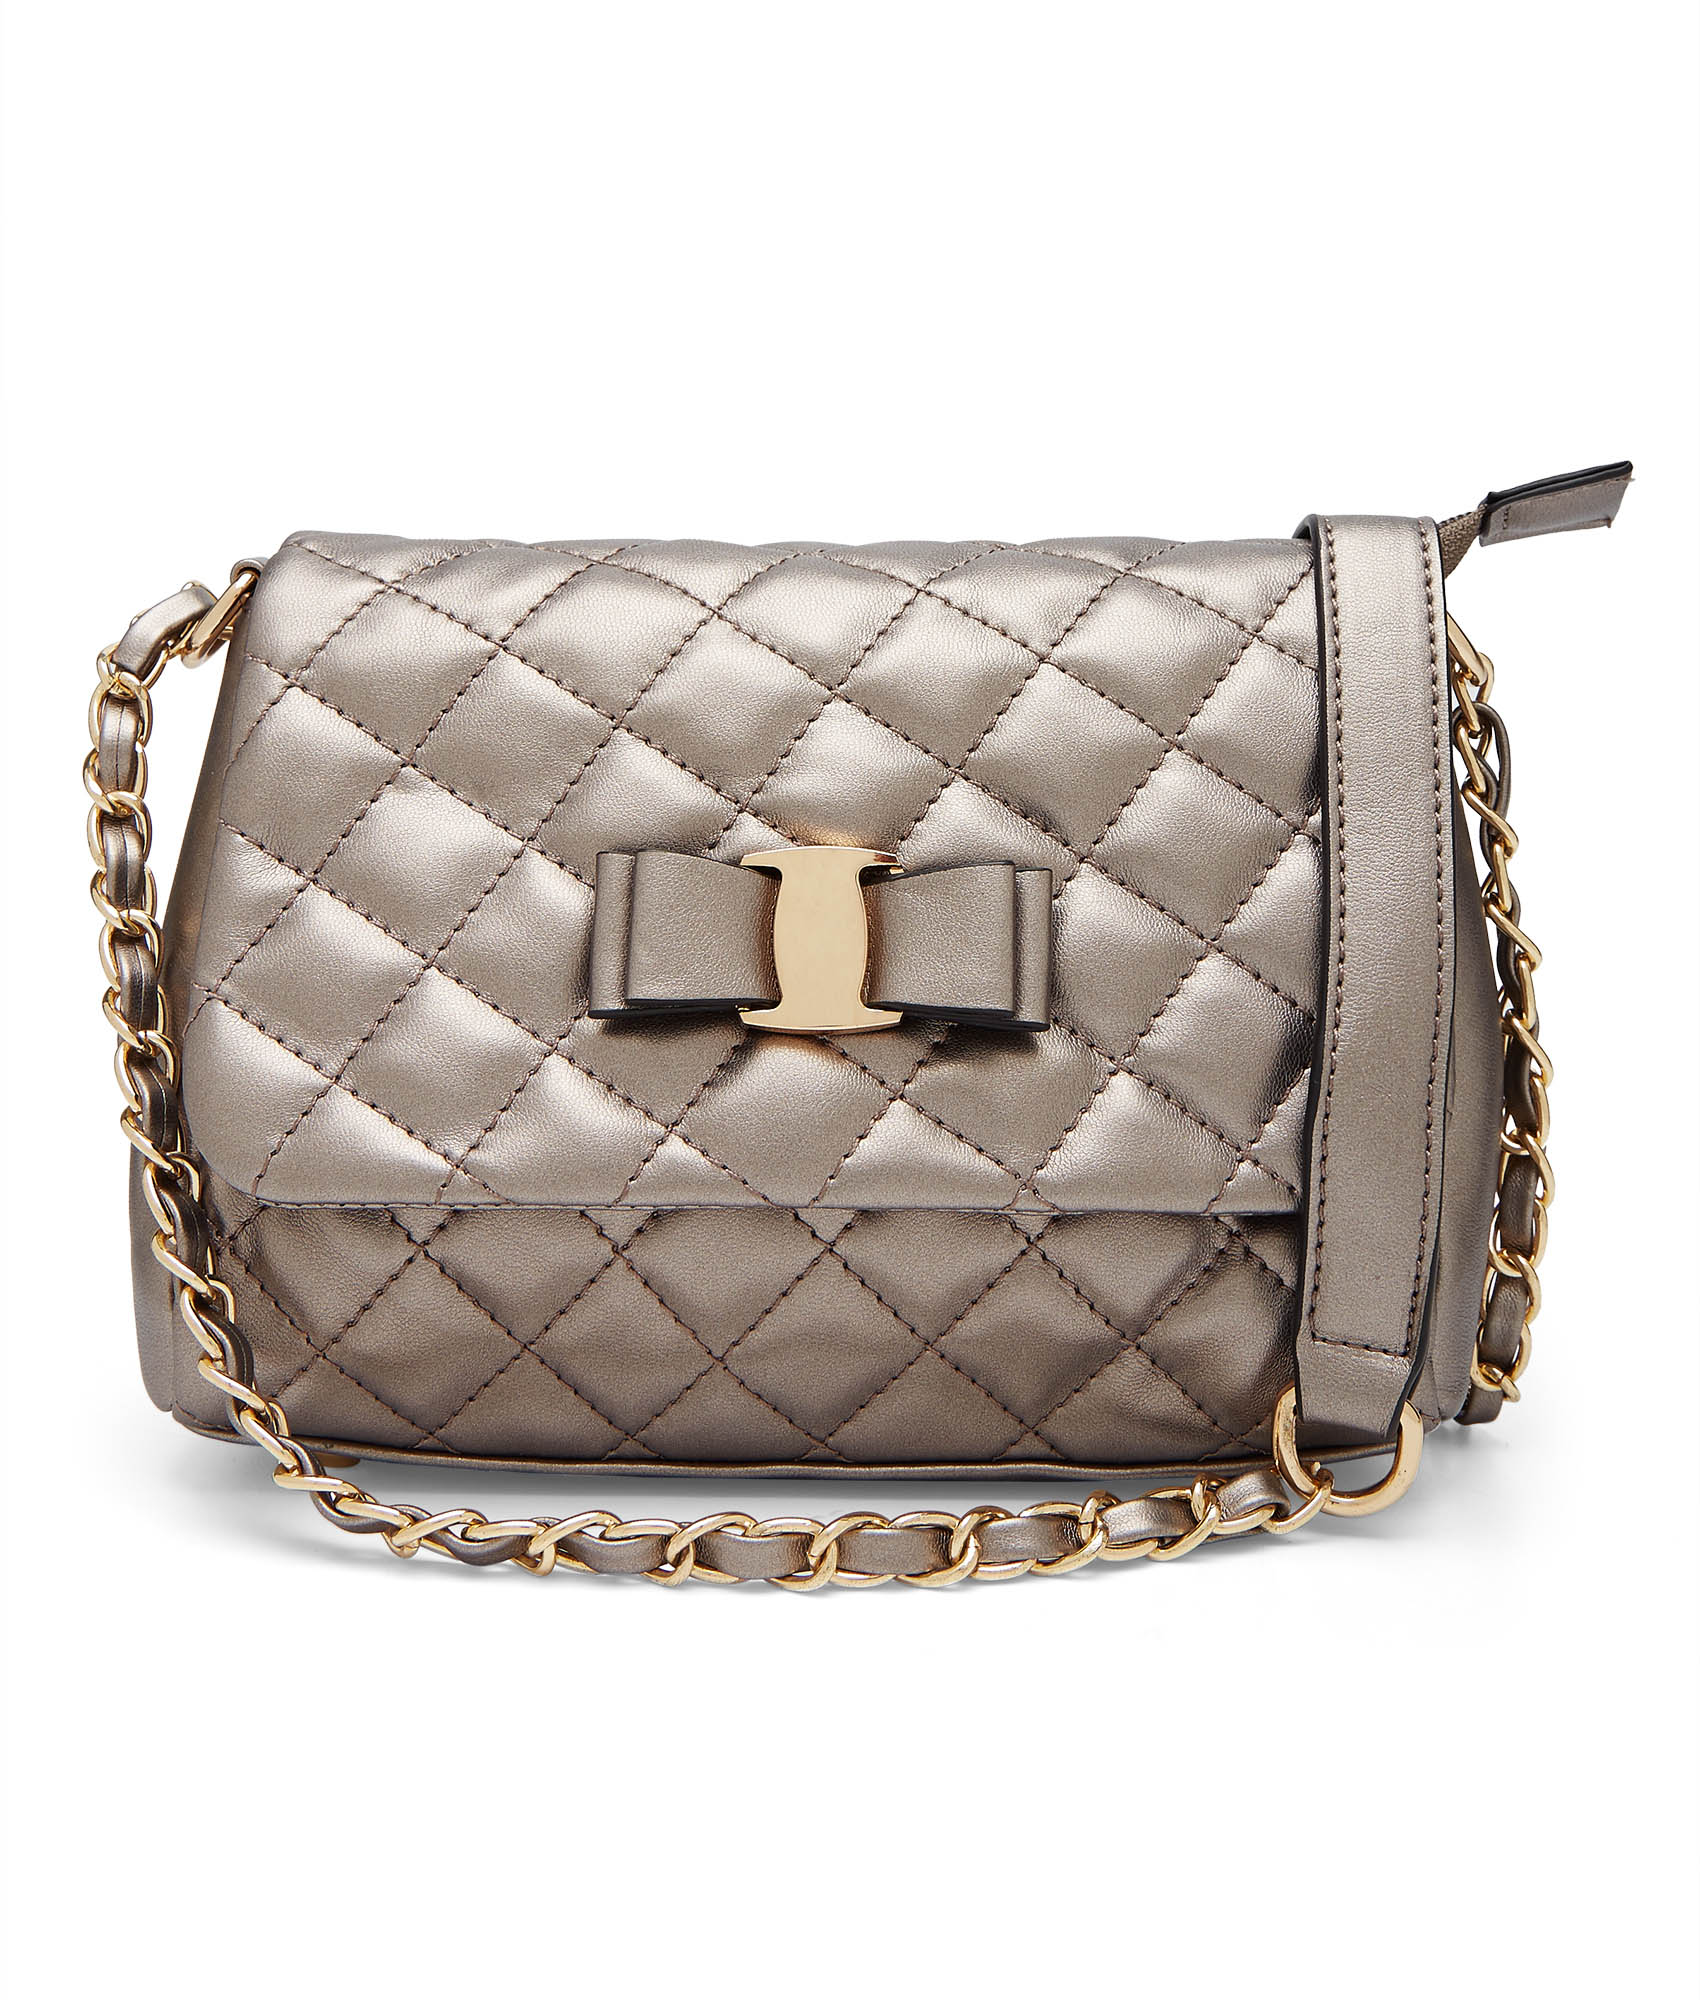 quilted sling bag for women